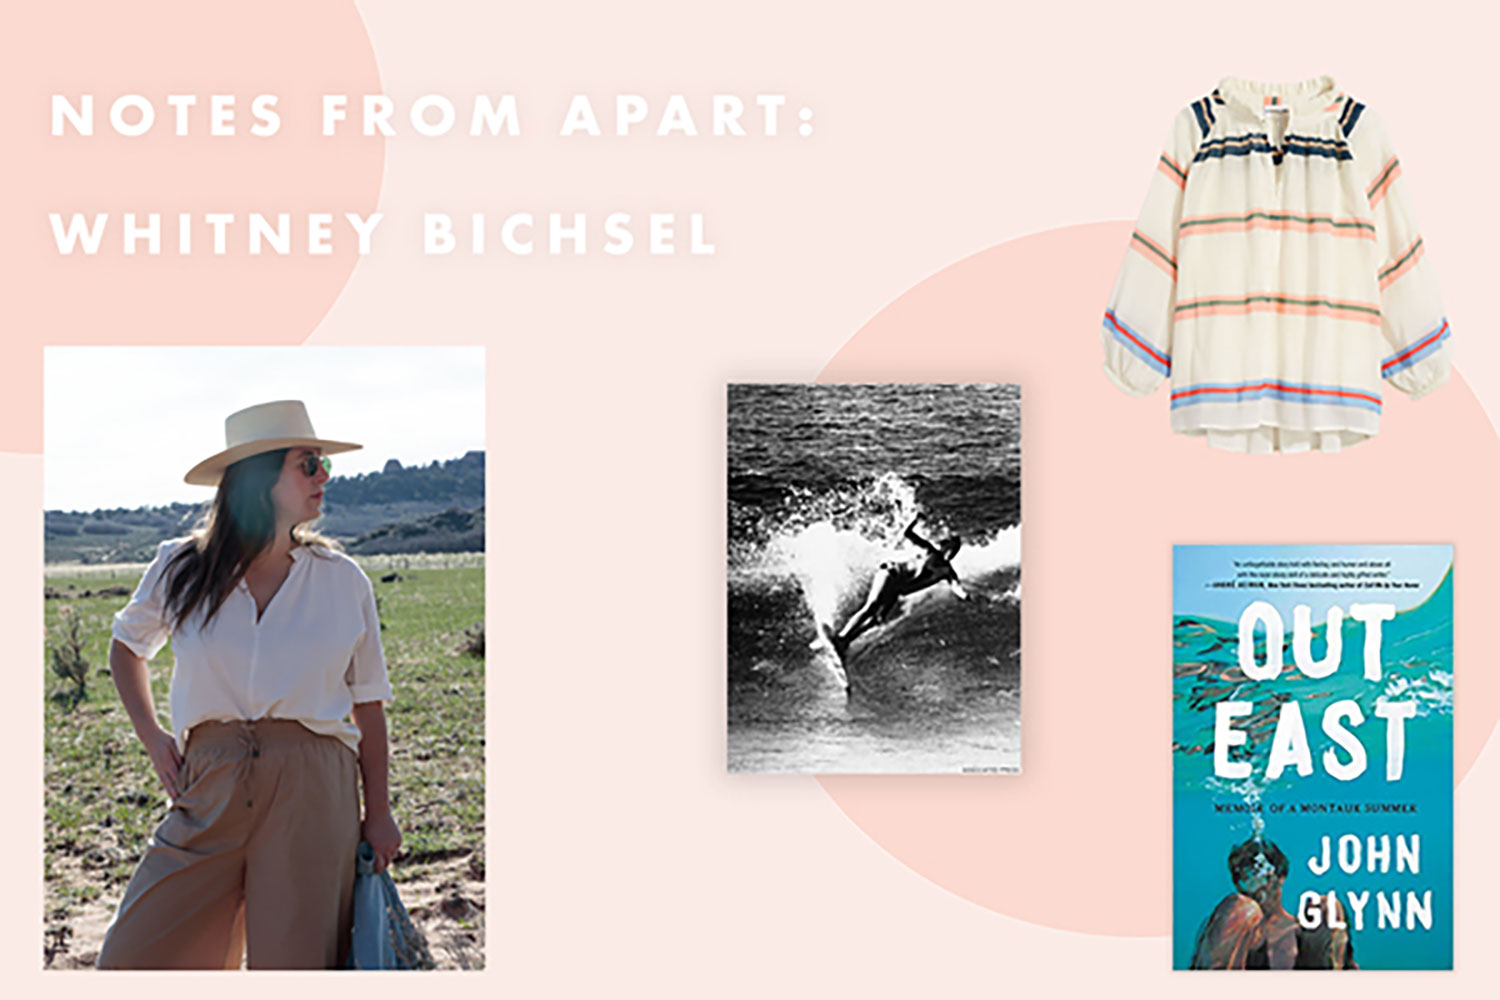 Notes From APART: Whitney Bichsel